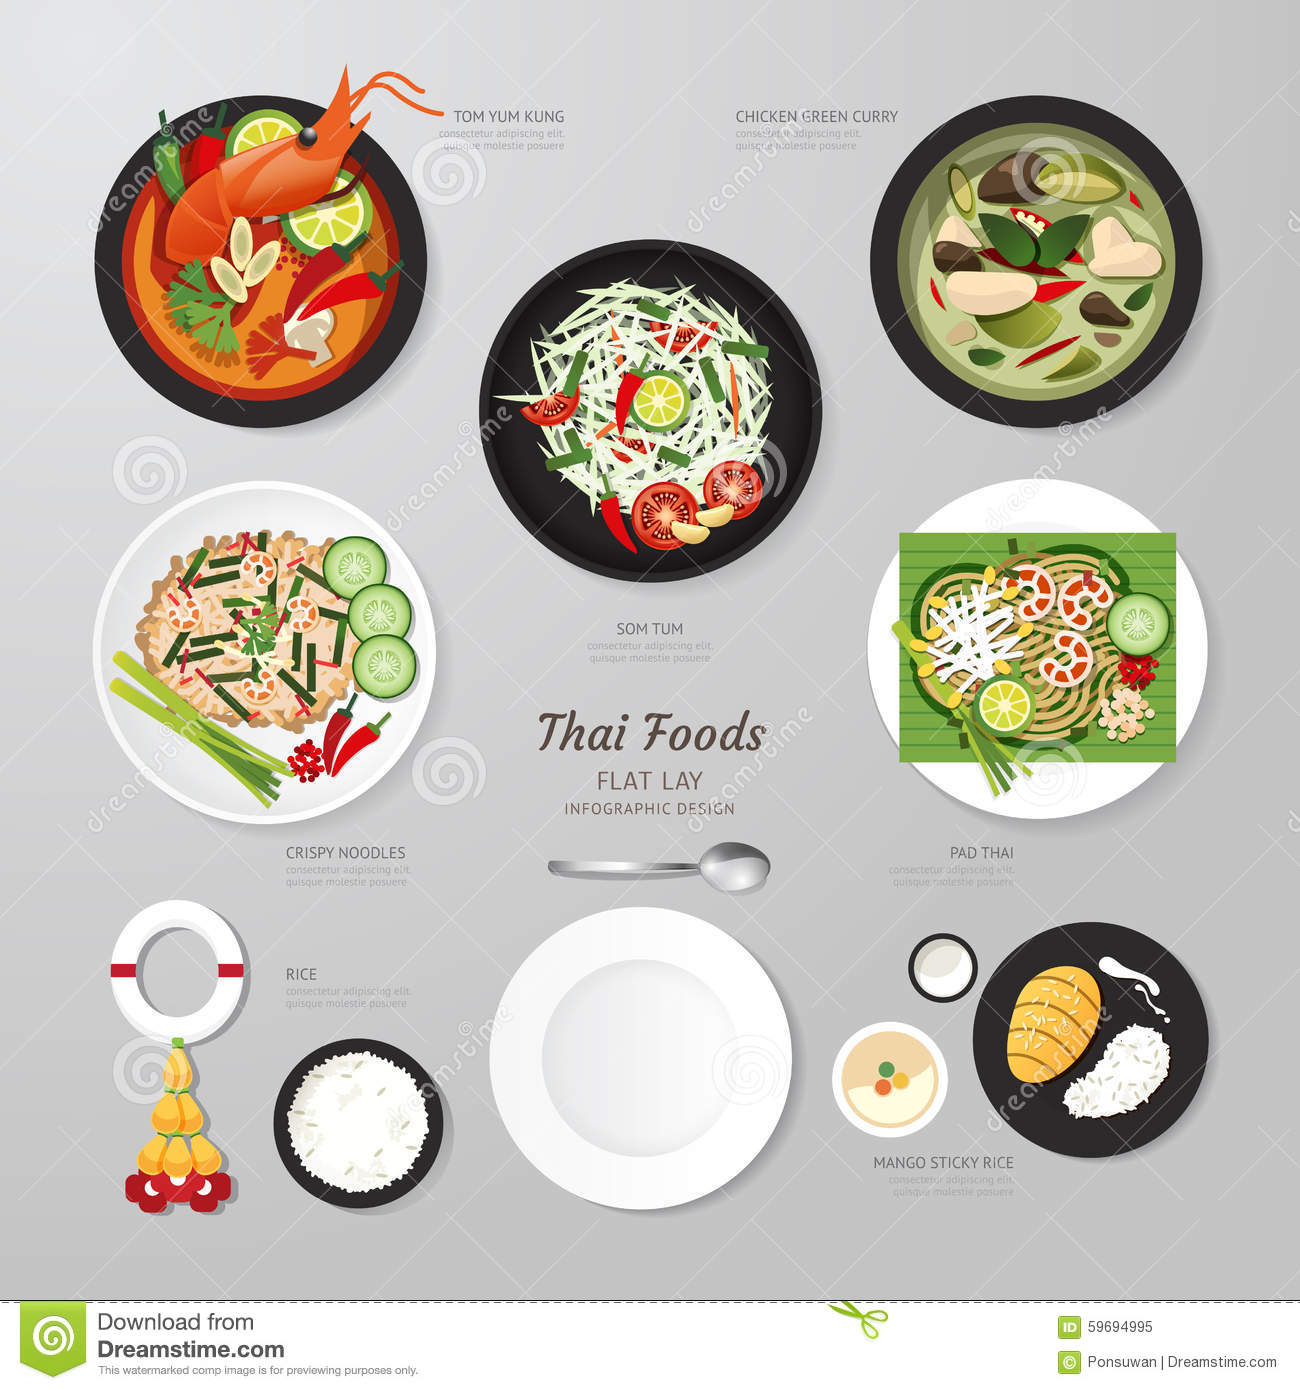 Img X additionally Woodworker Clipart furthermore Rice Paddy Planting Ripe Grain Food Product Crops Seed Husk Still Feature besides Voice User Interface additionally Nrnasrtdjw Roy Mm Z Olsivepi Sy Fm Yjx Xo Ljs Vssoxscw Lcs M Mog. on food web diagram